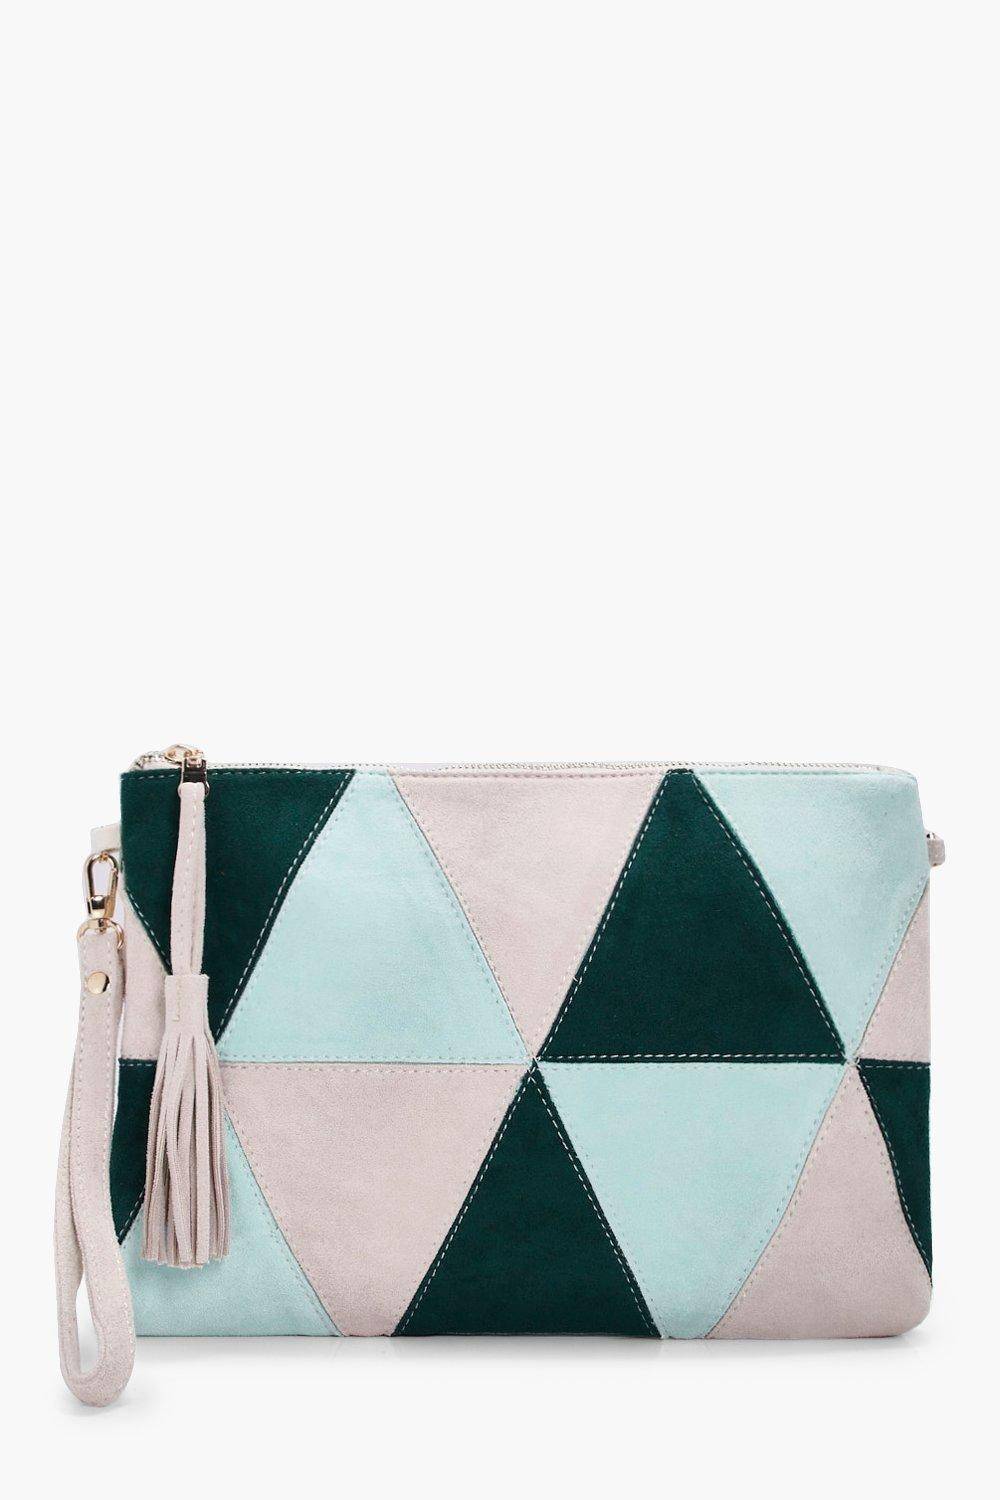 Suedette Patchwork Cross Body - green - Poppy Sued